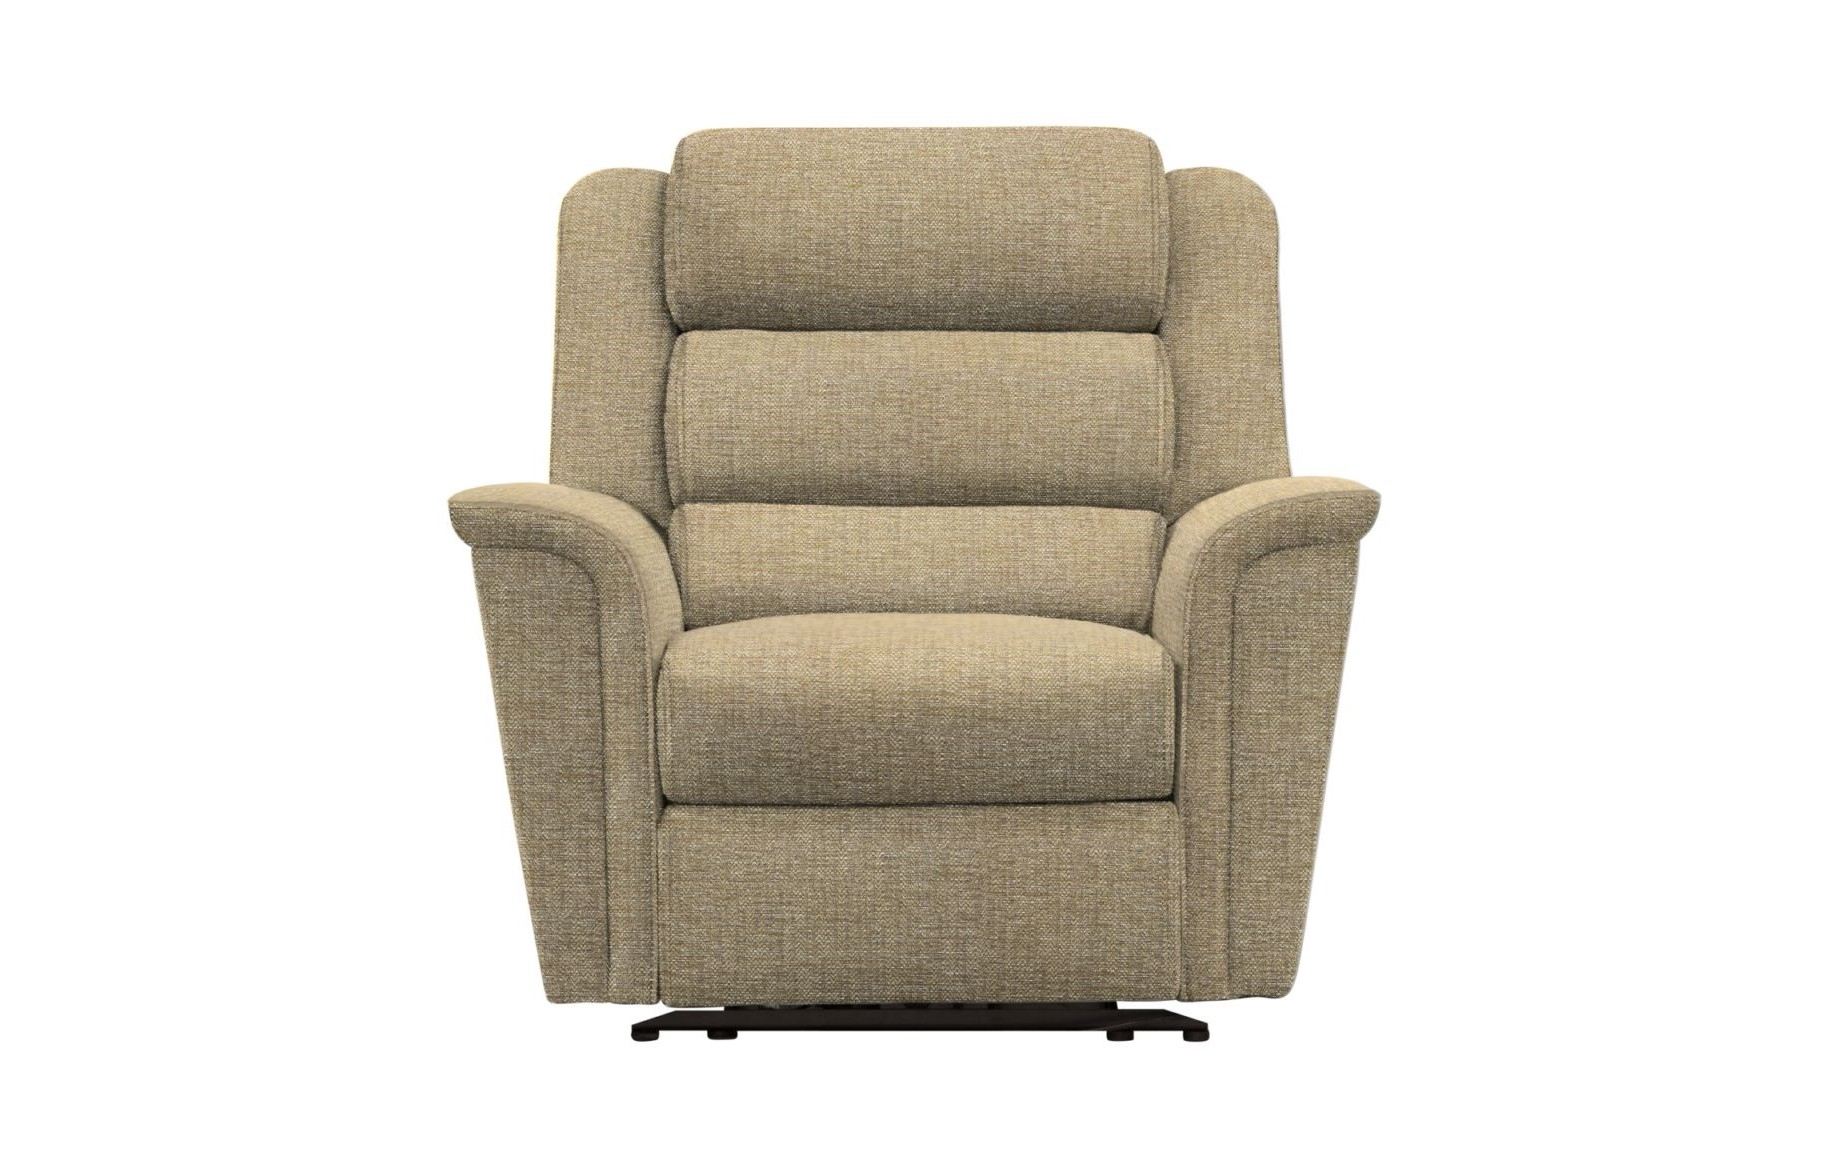 Parker Knoll Colorado Power Recliner Armchair with USB Port